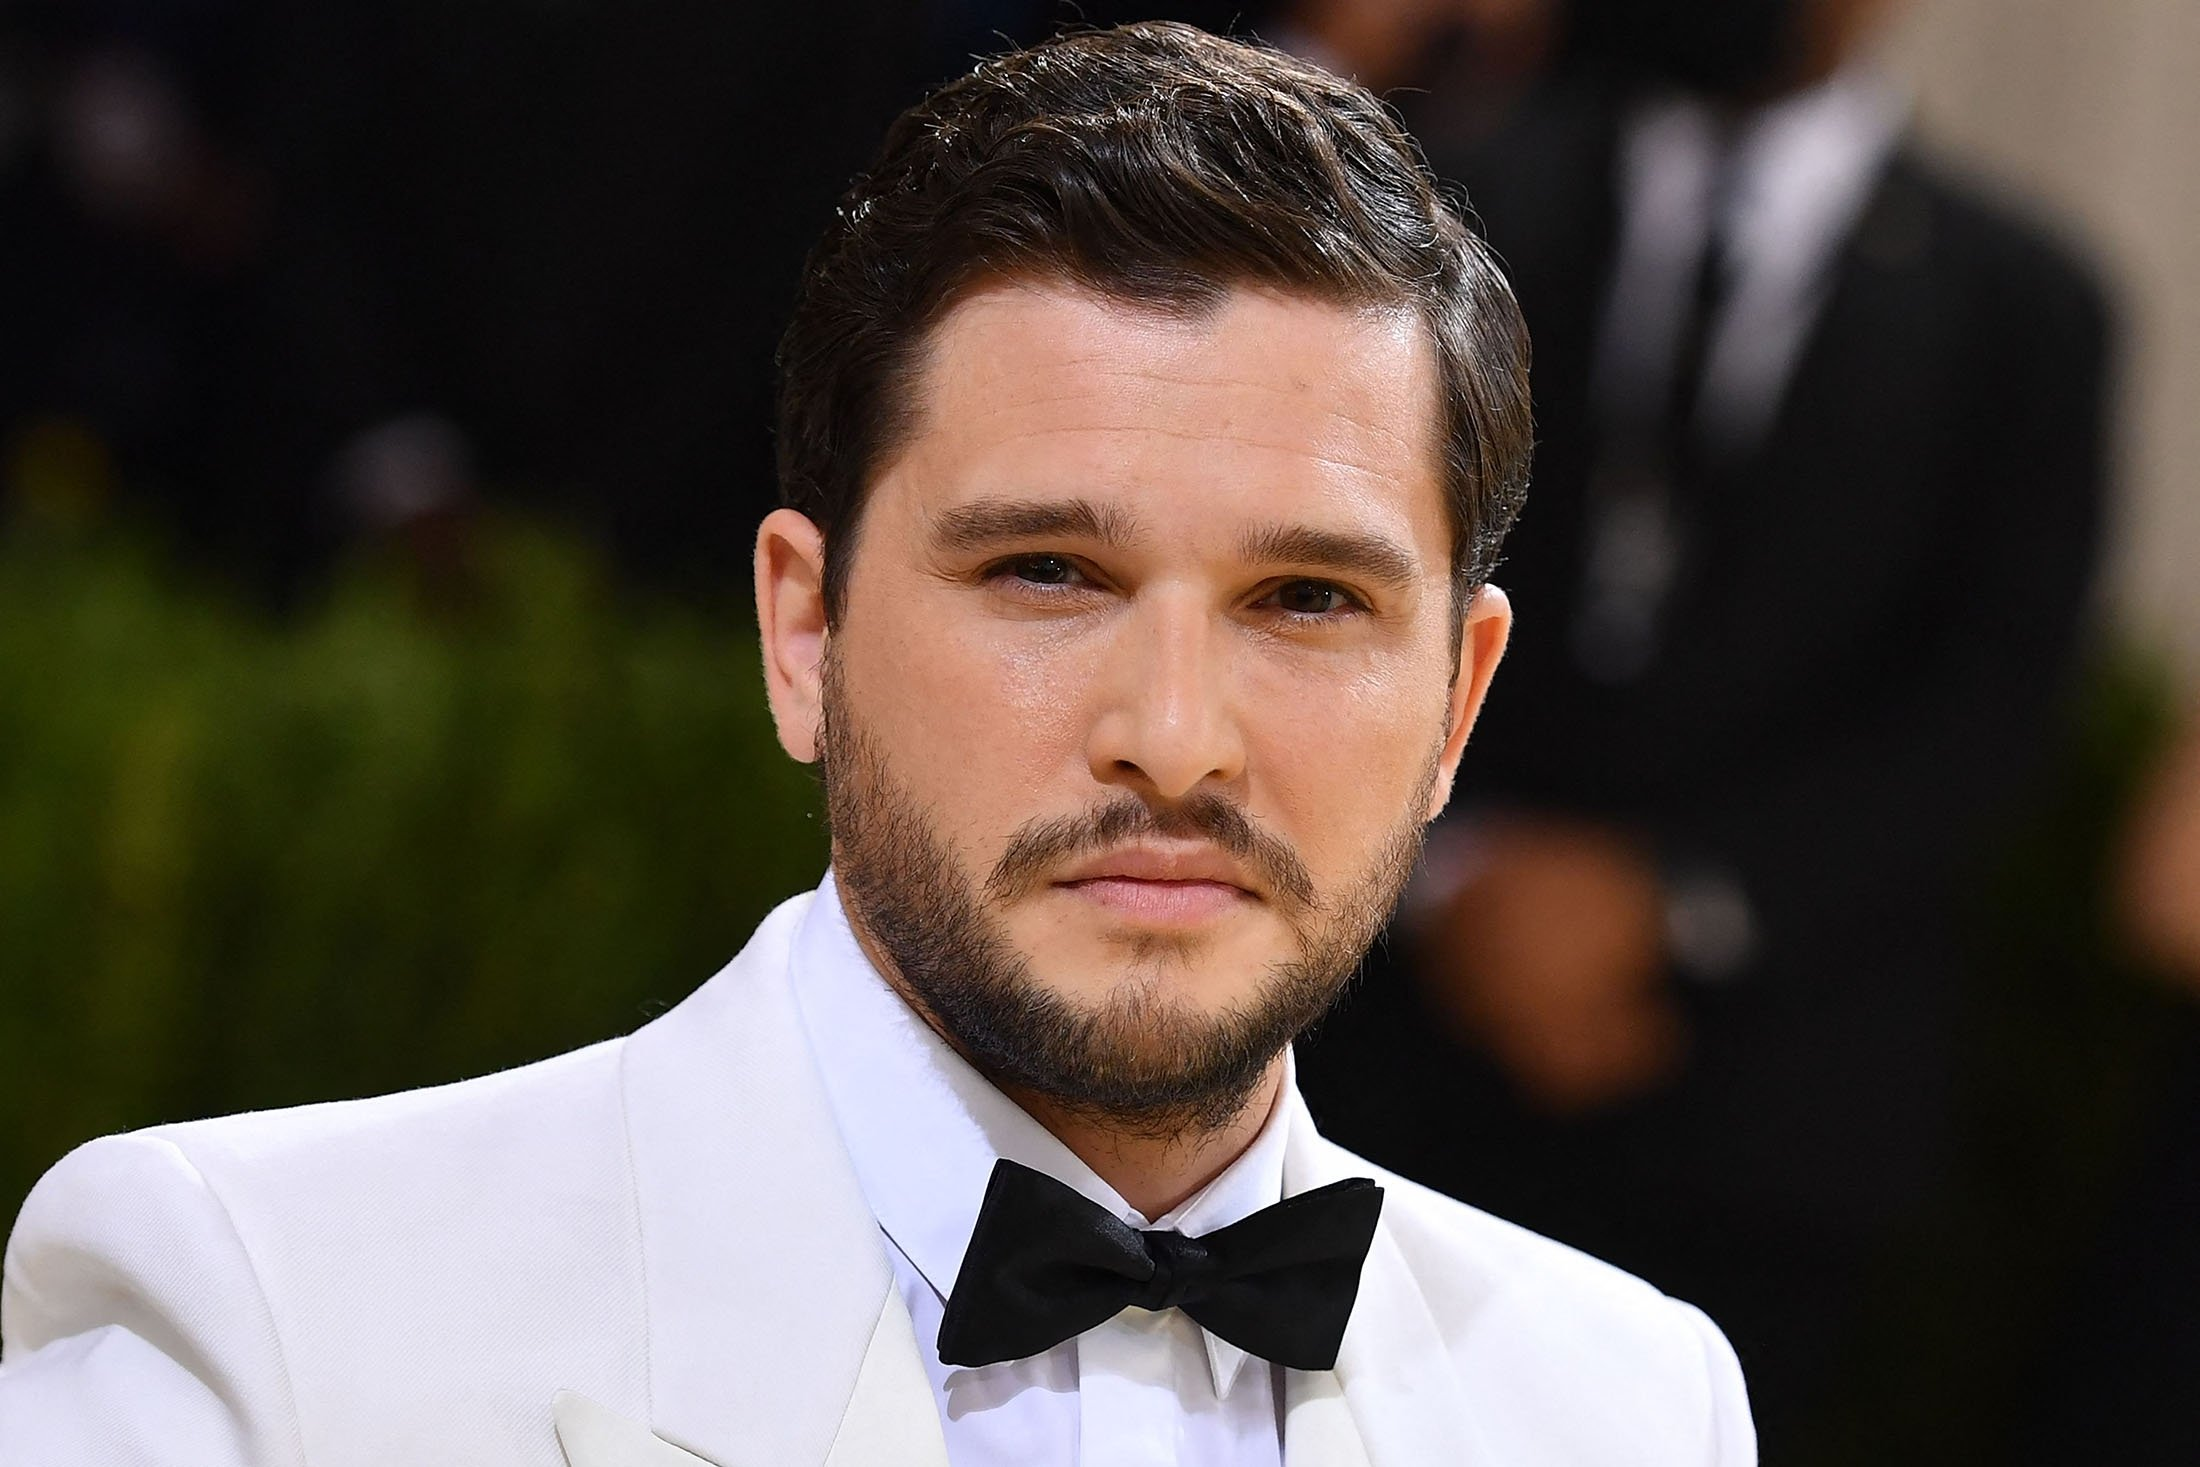 English actor Kit Harington arrives for the 2021 Met Gala at the Metropolitan Museum of Art, in New York, U.S., Sept. 13, 2021. (AFP Photo)